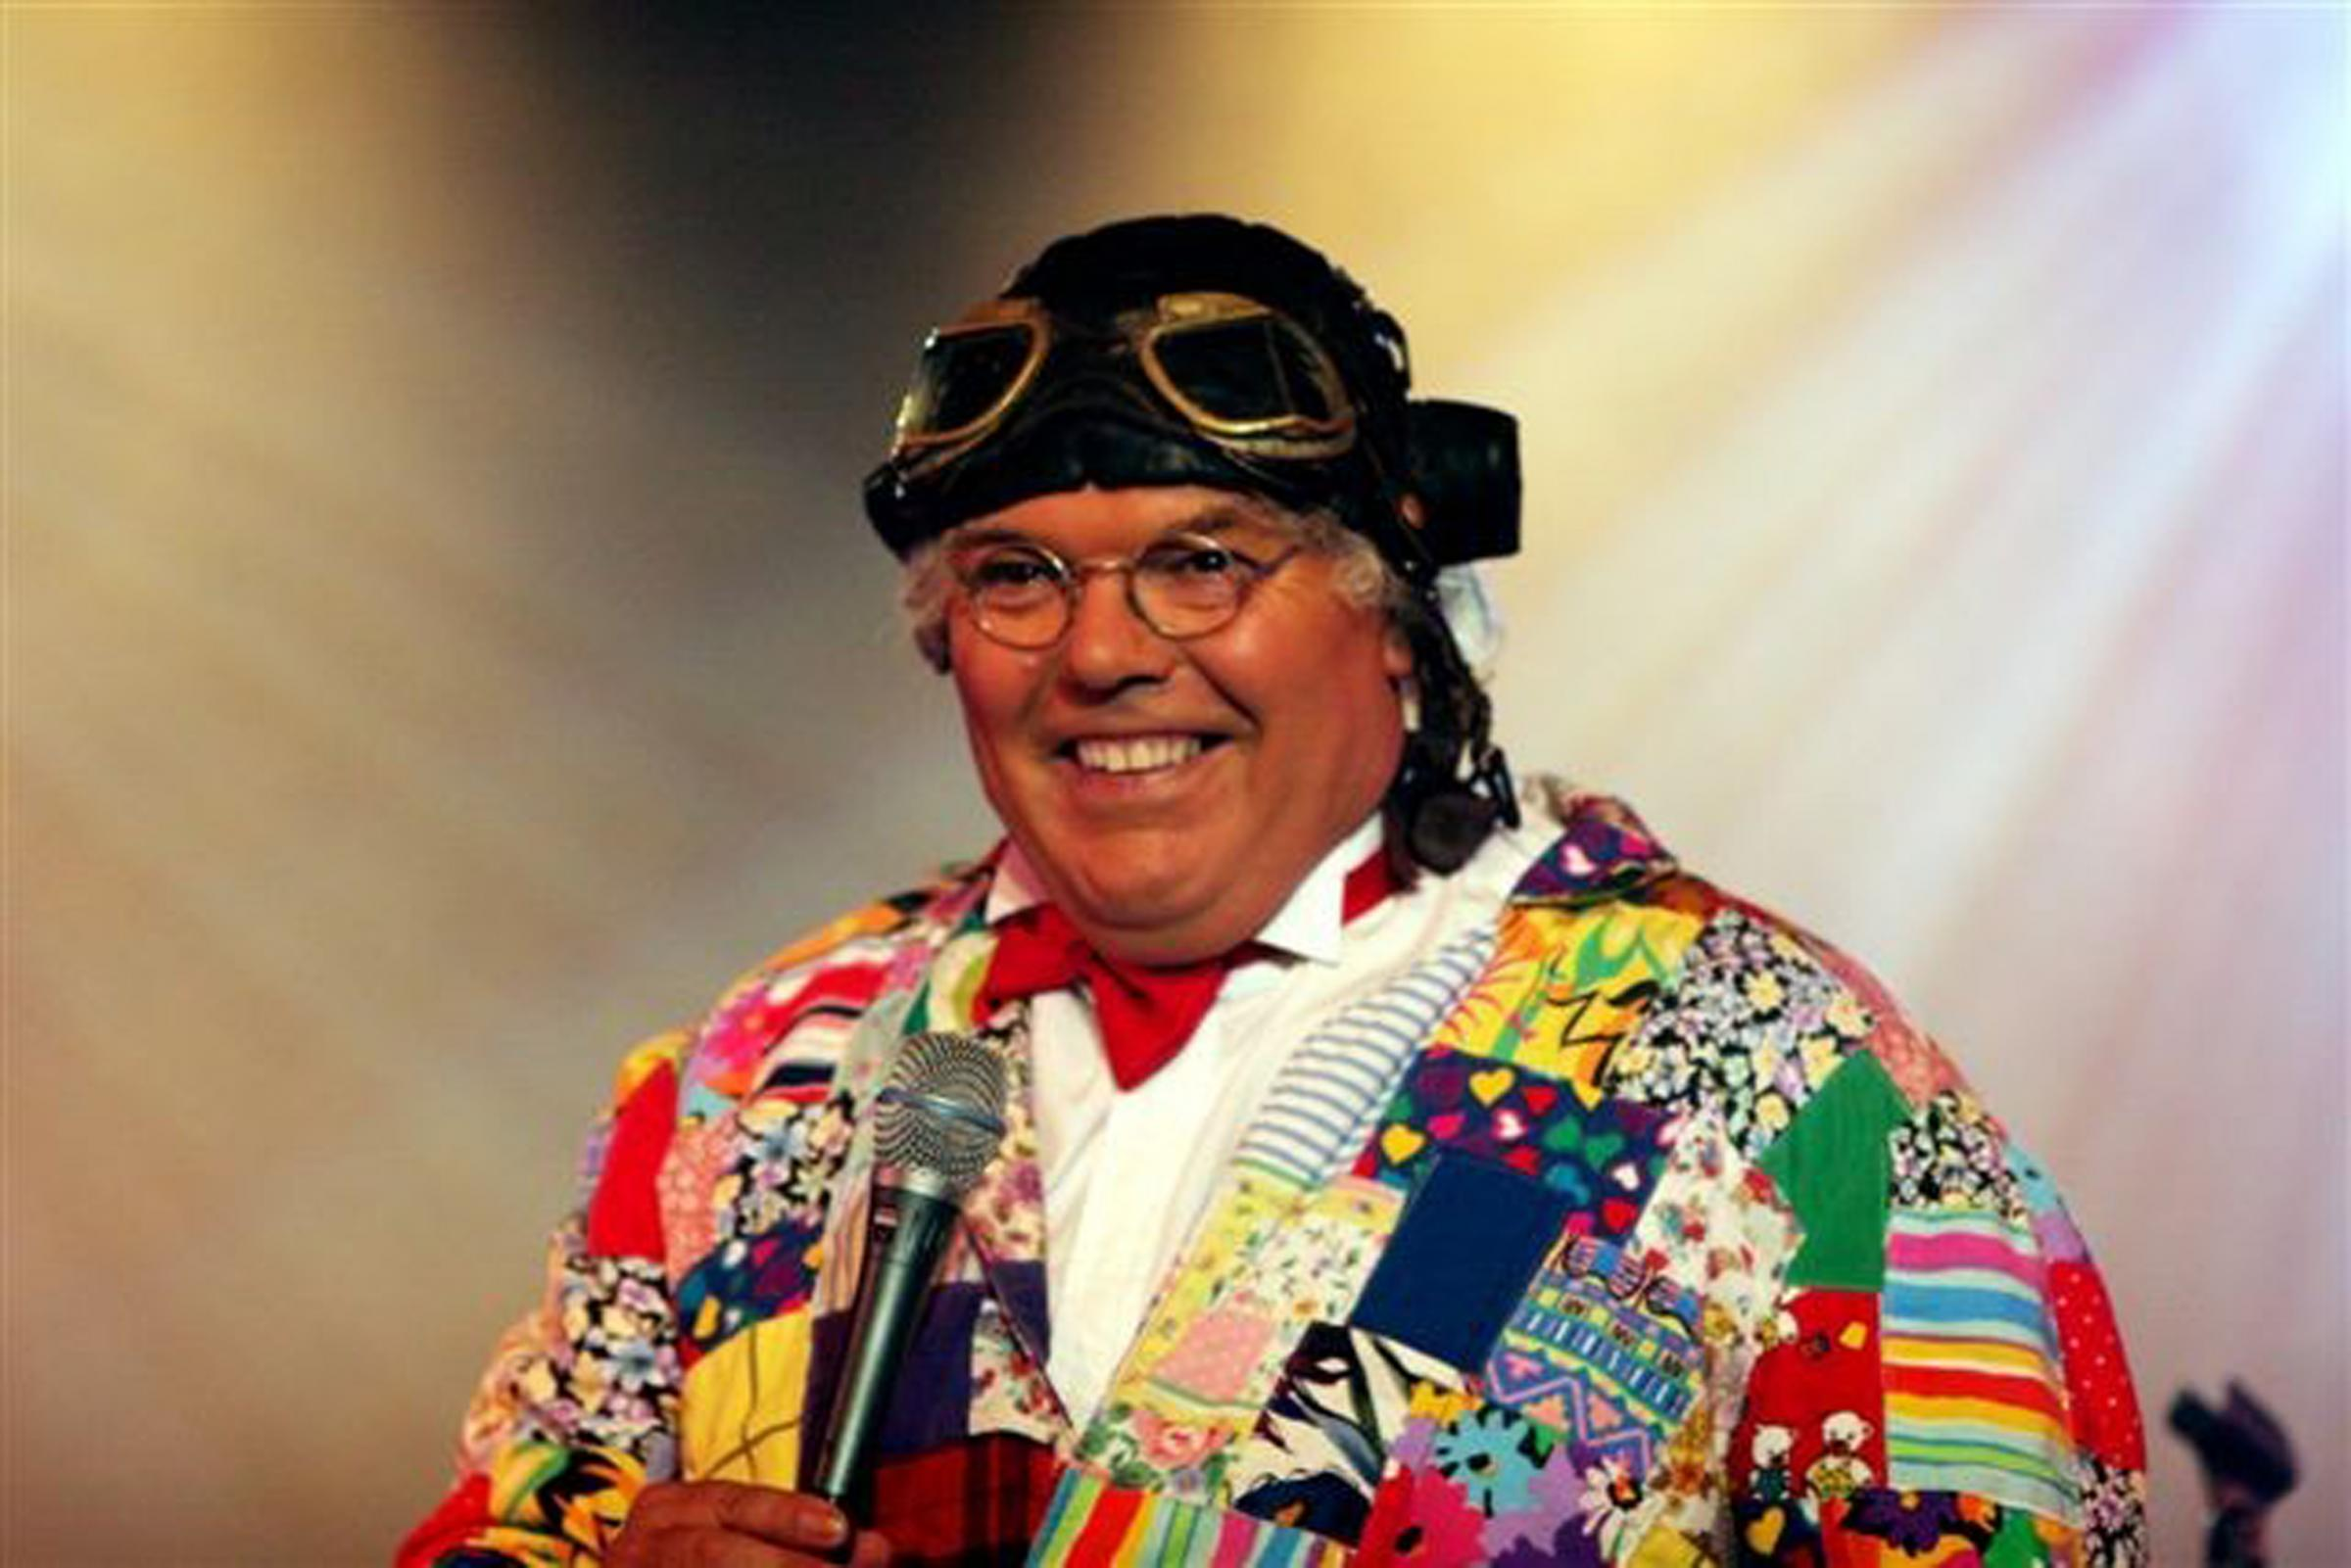 Roy chubby brown documentary